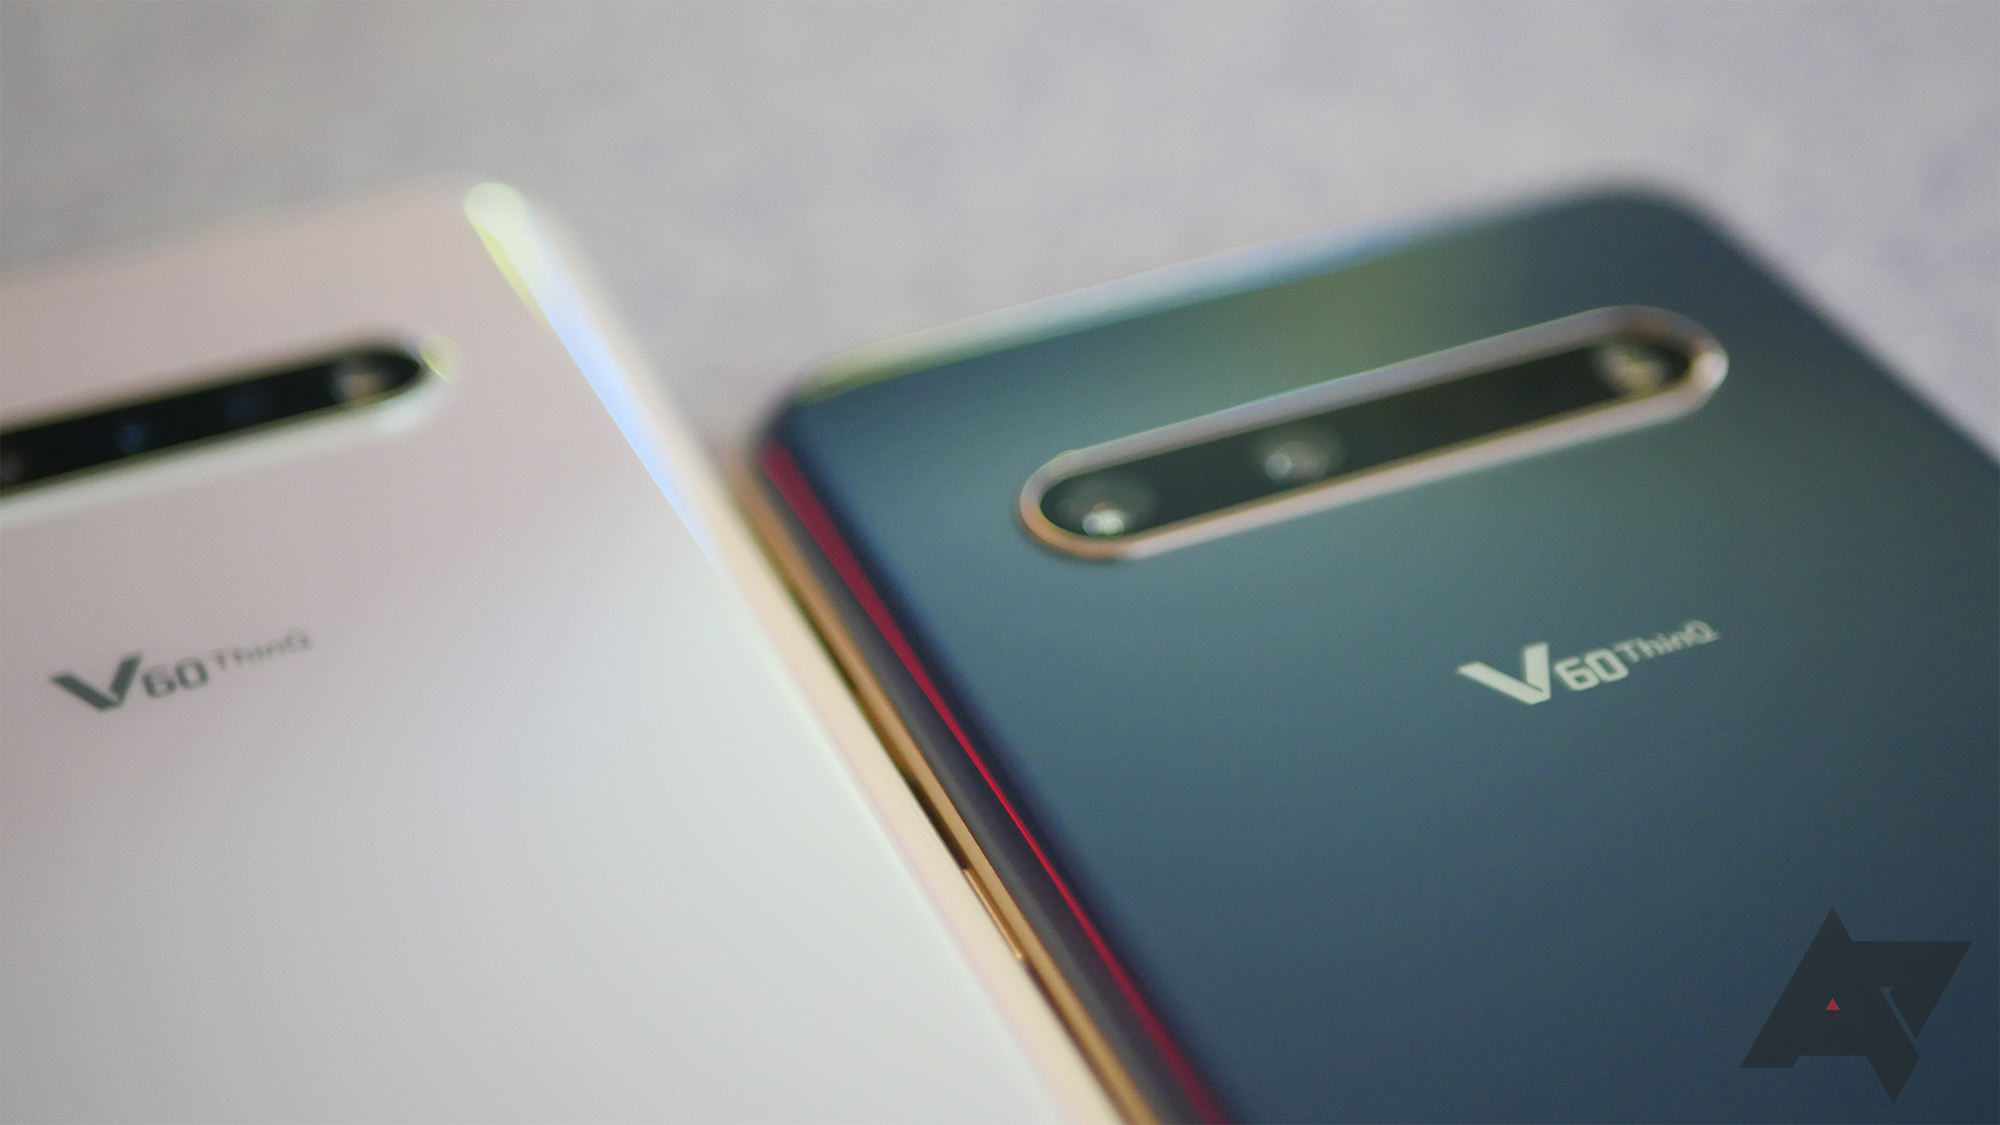 LG starts bringing Android 11 to its US phones, beginning with the V60 thumbnail